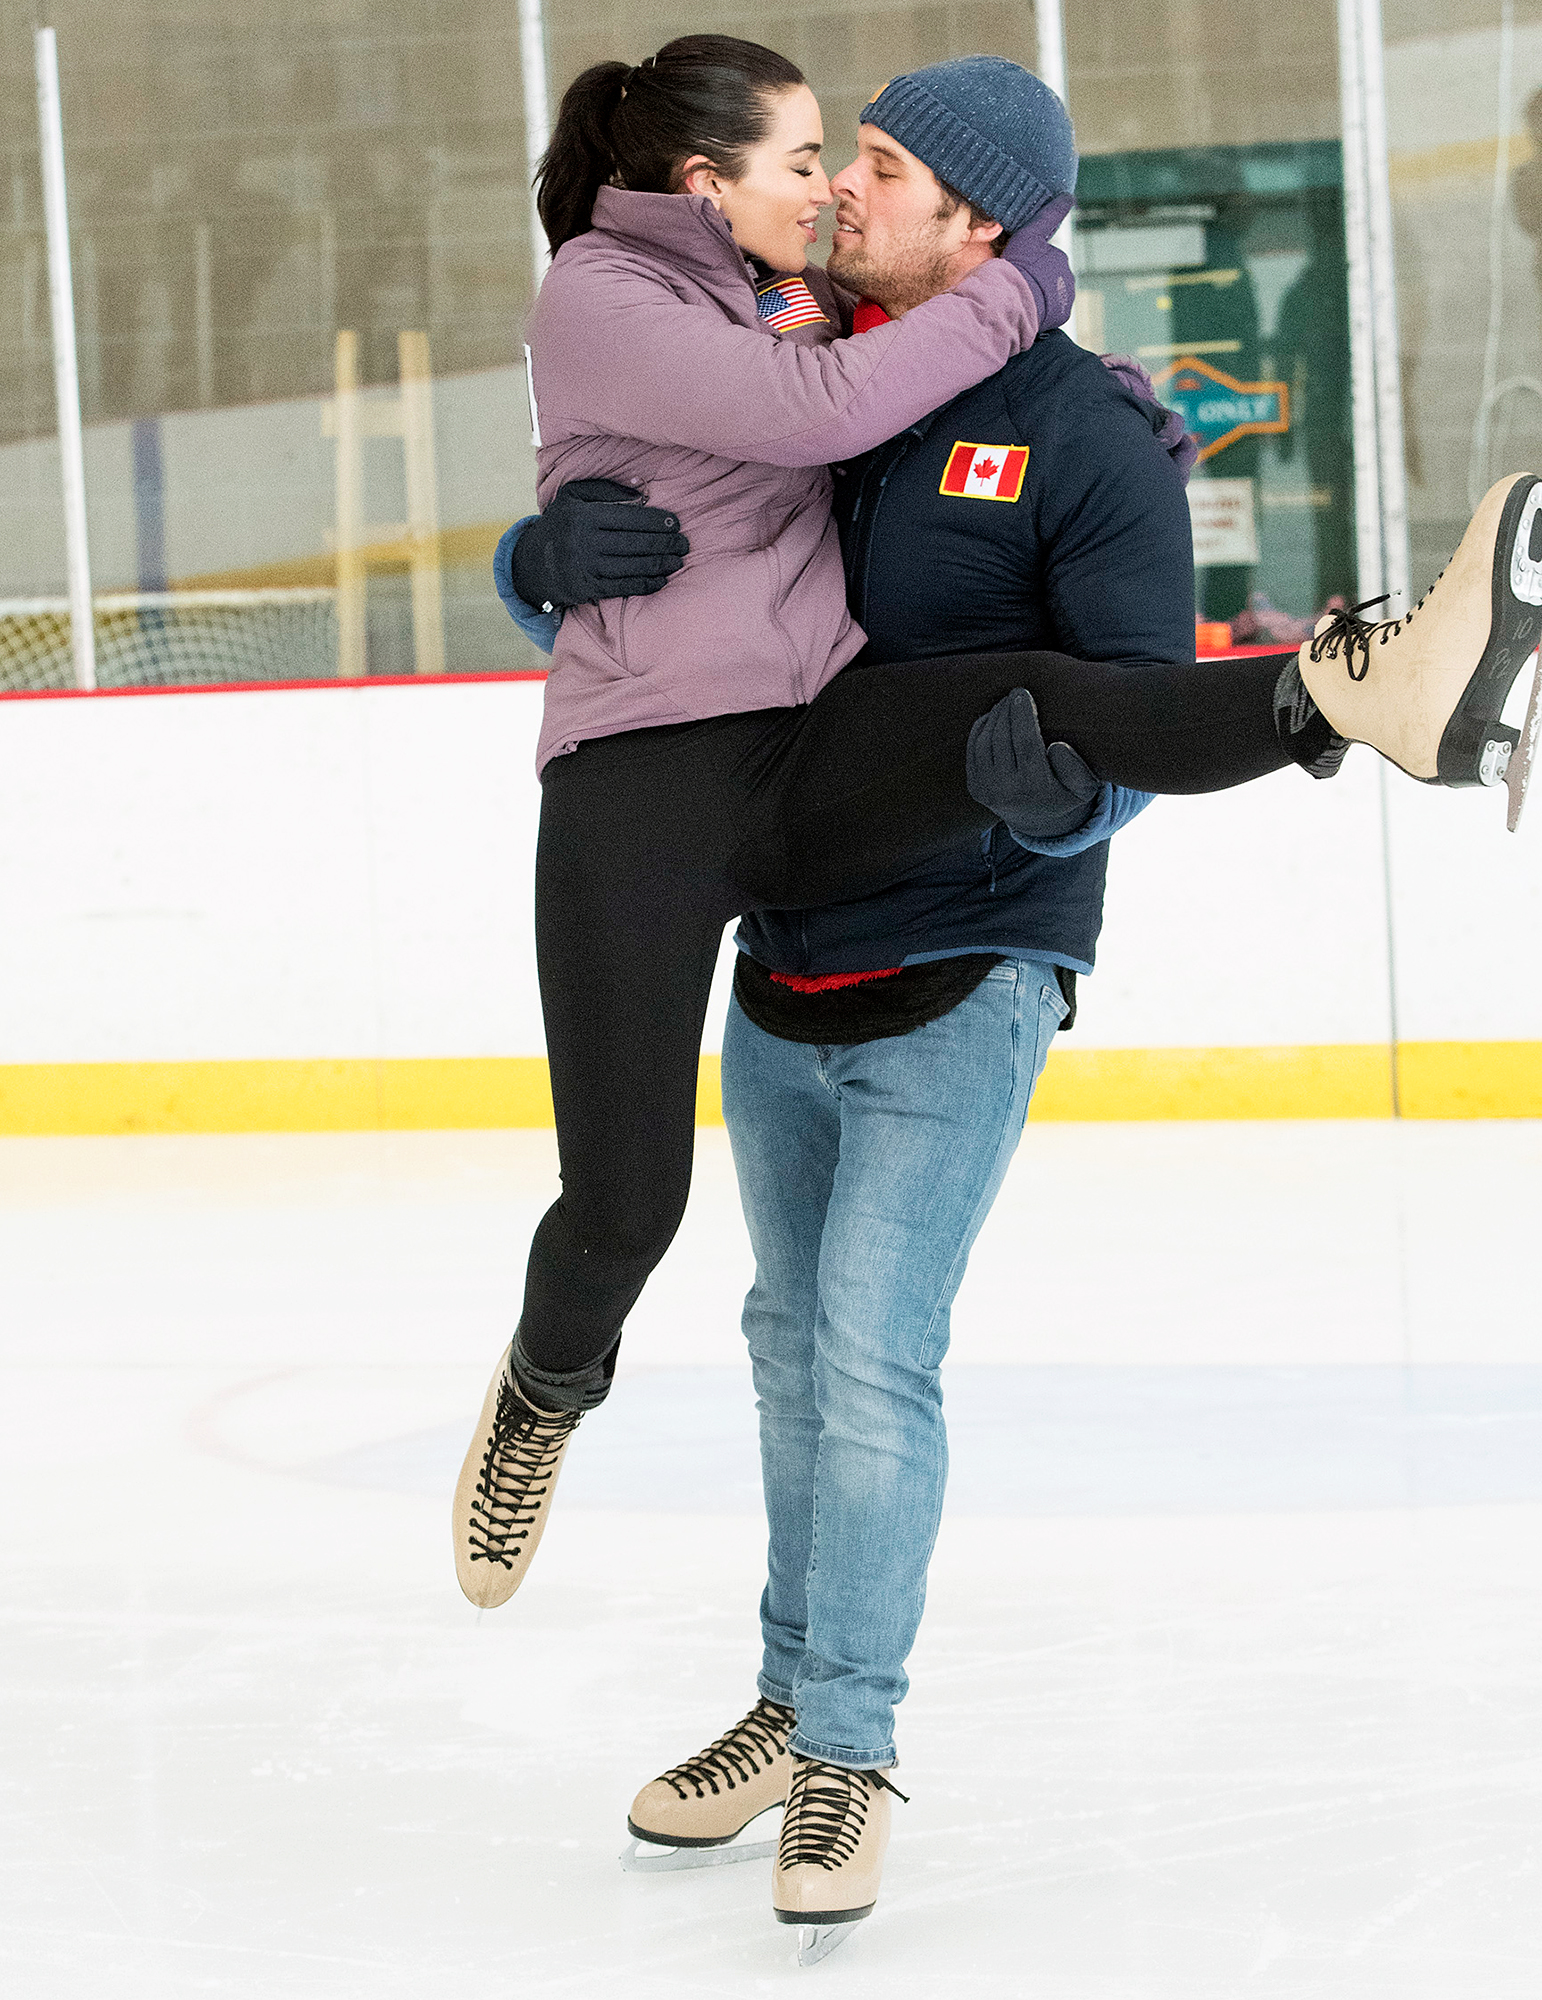 Ashley Iaconetti Kevin Wendt The Bachelor Winter Games